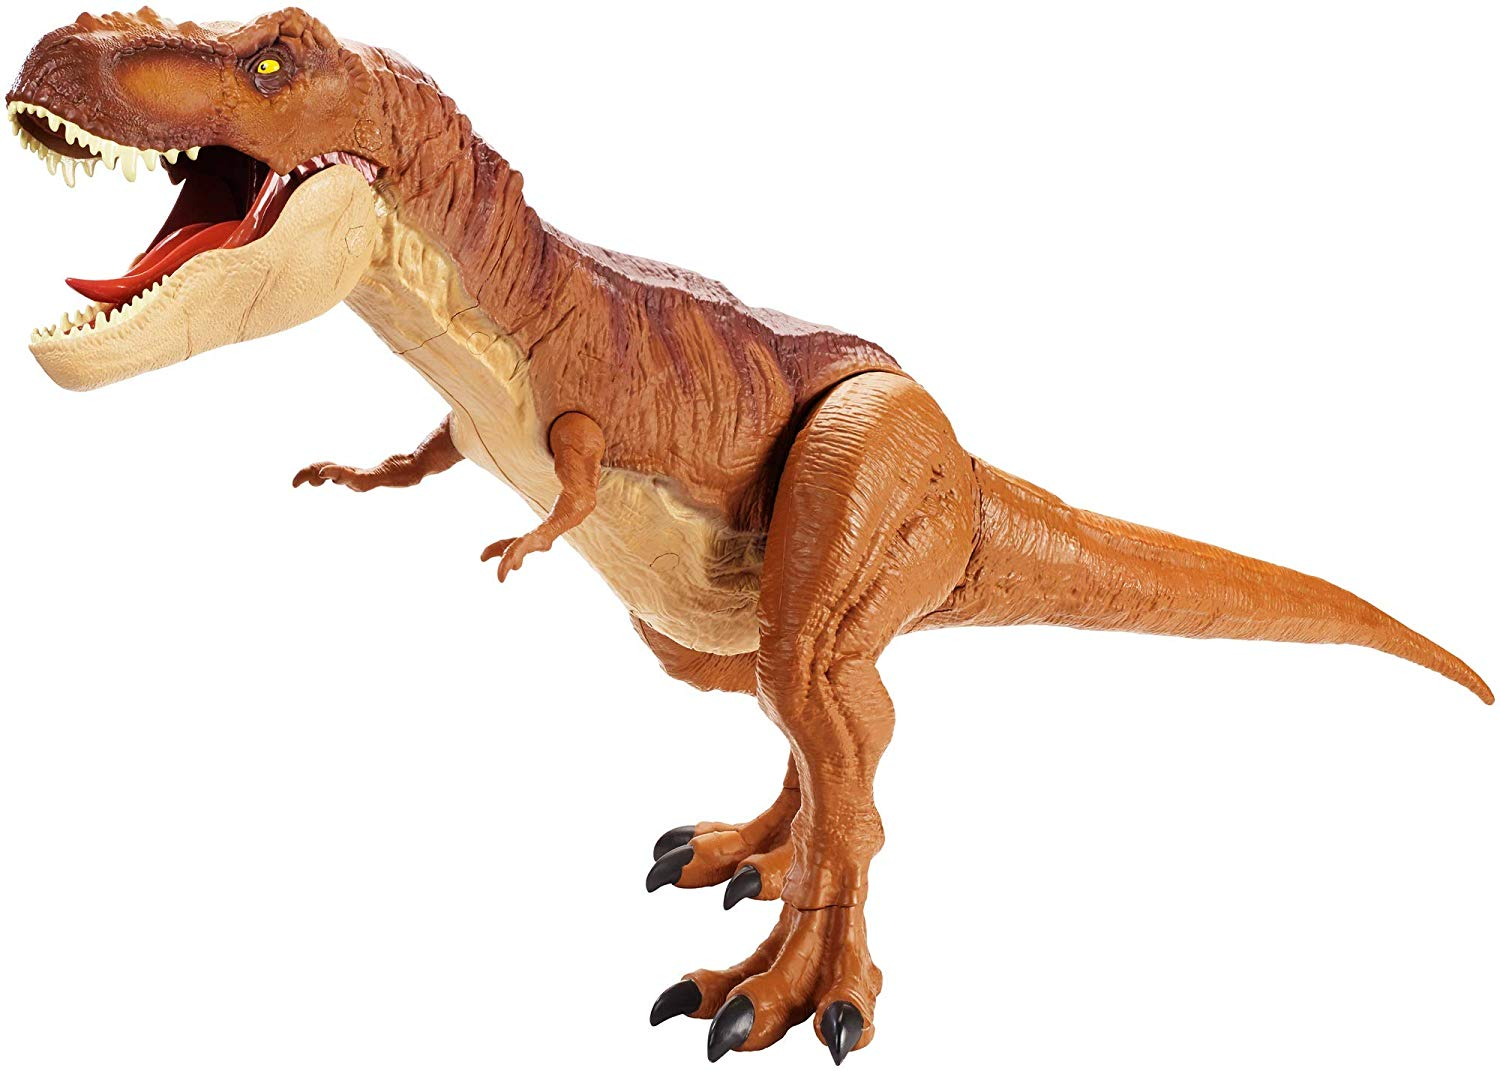 Jurassic World FMM63 Giant T-Rex Dinosaur, Approximately 90 cm